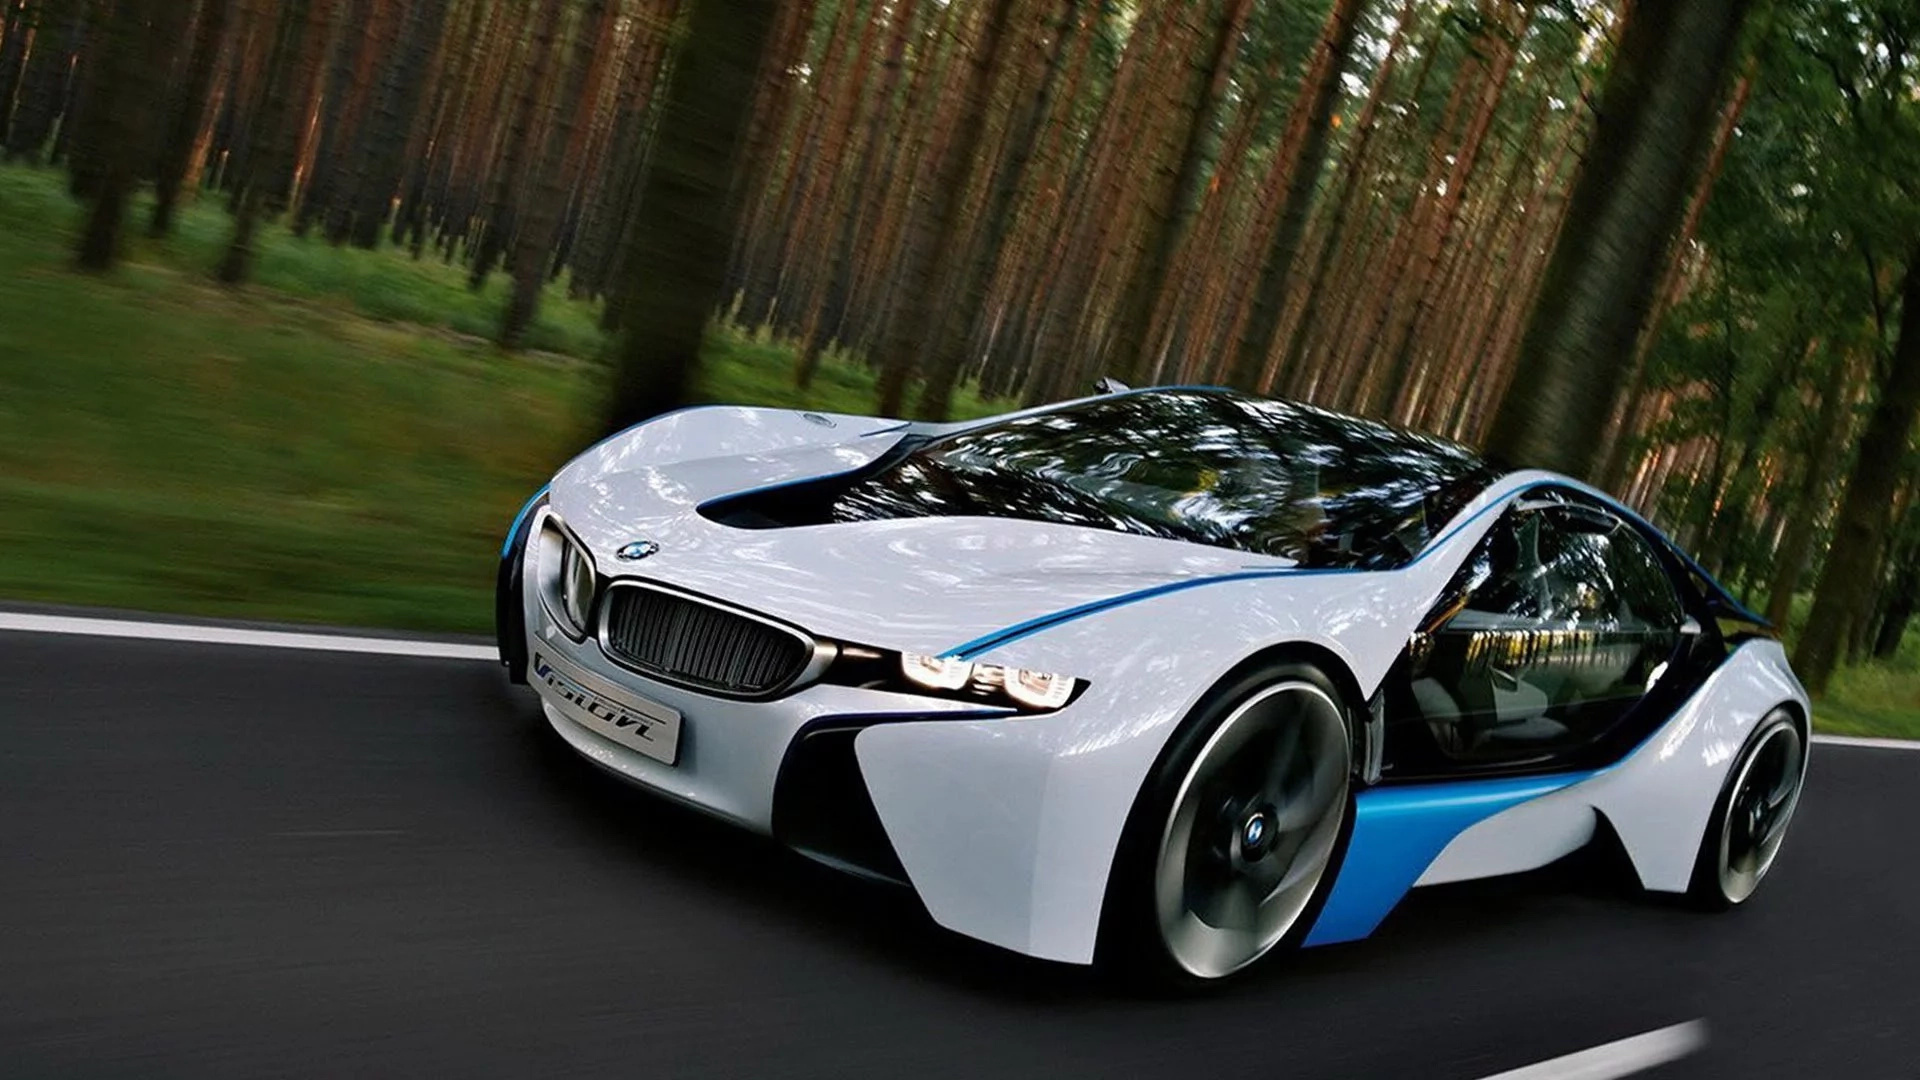 BMW i8 in Kenya, this is the rich CEO who owns it